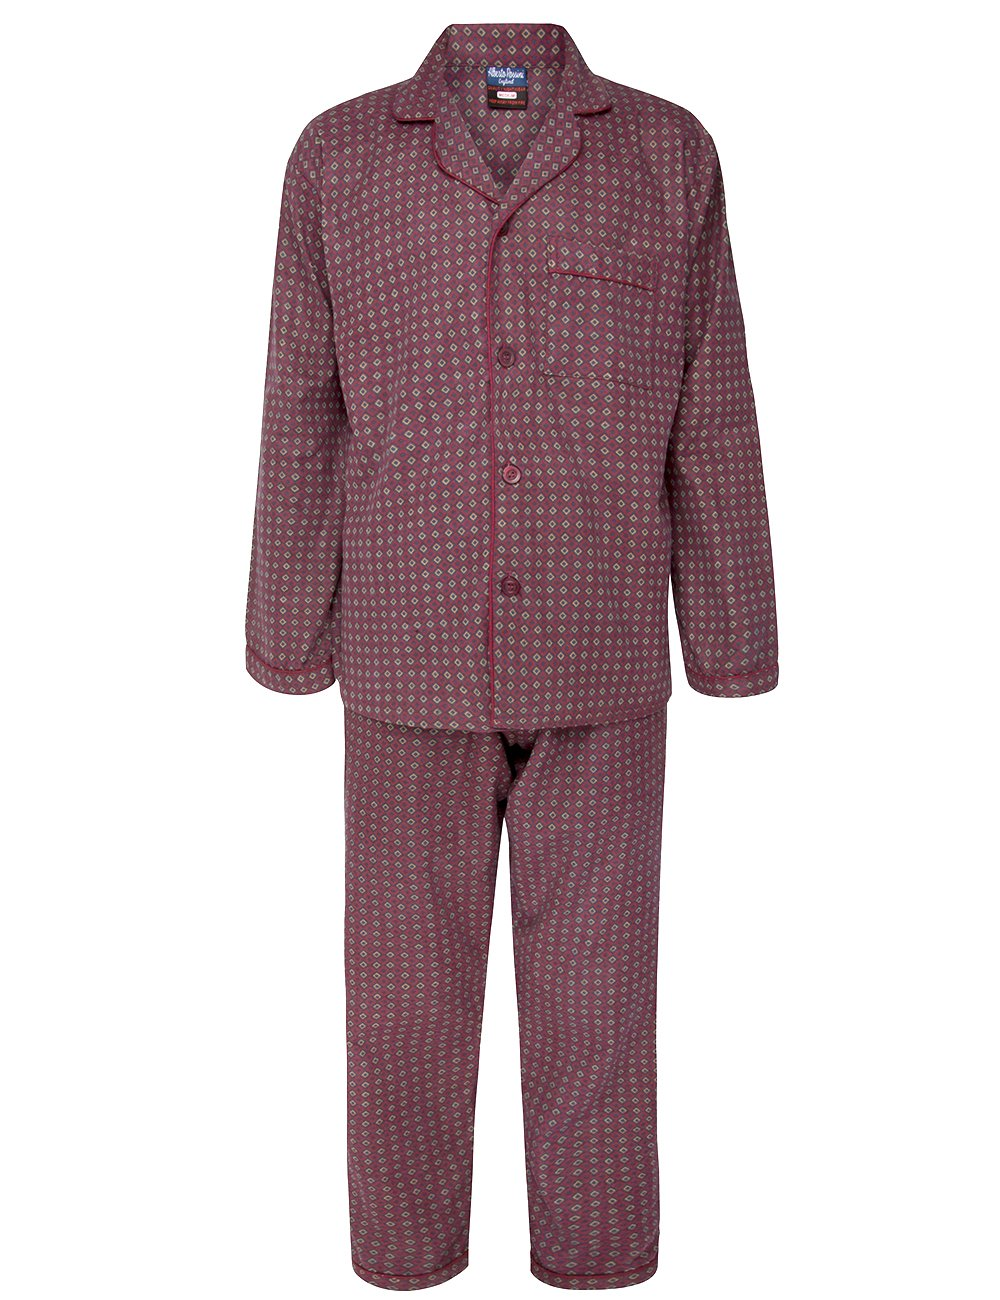 Alberto Rossini Mens Winter Winceyette Flannel Pyjamas Brushed Cotton Nighwear Sizes M to XXl